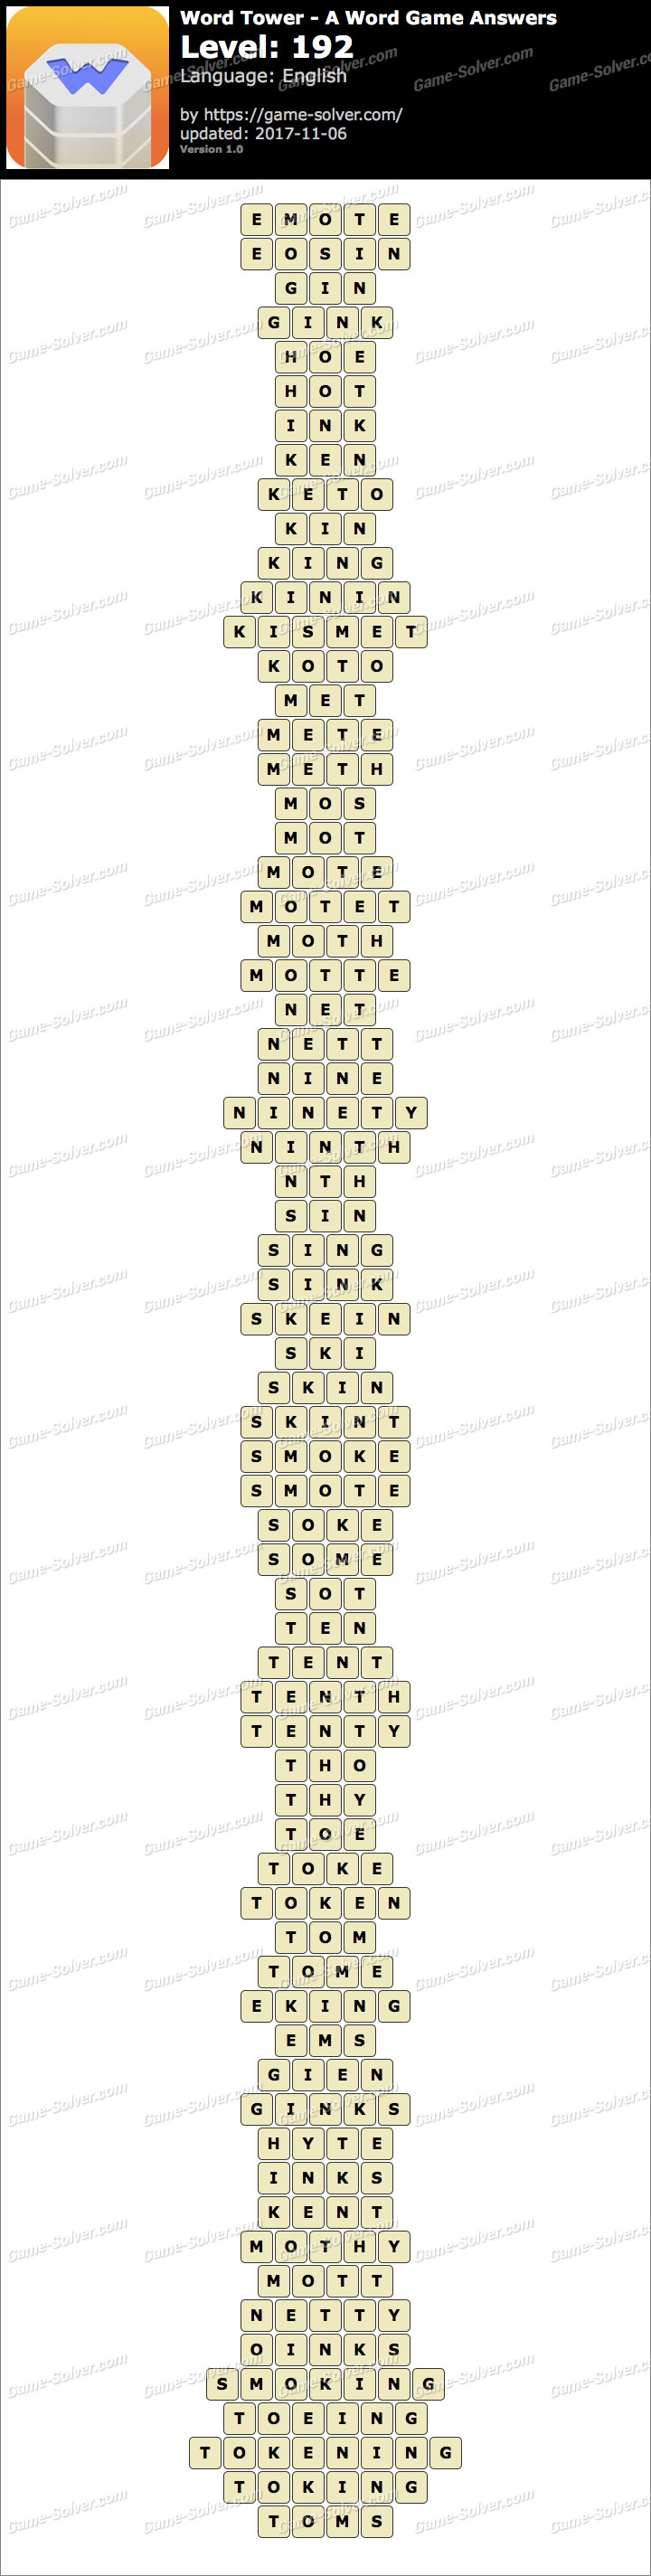 Word Tower Level 192 Answers